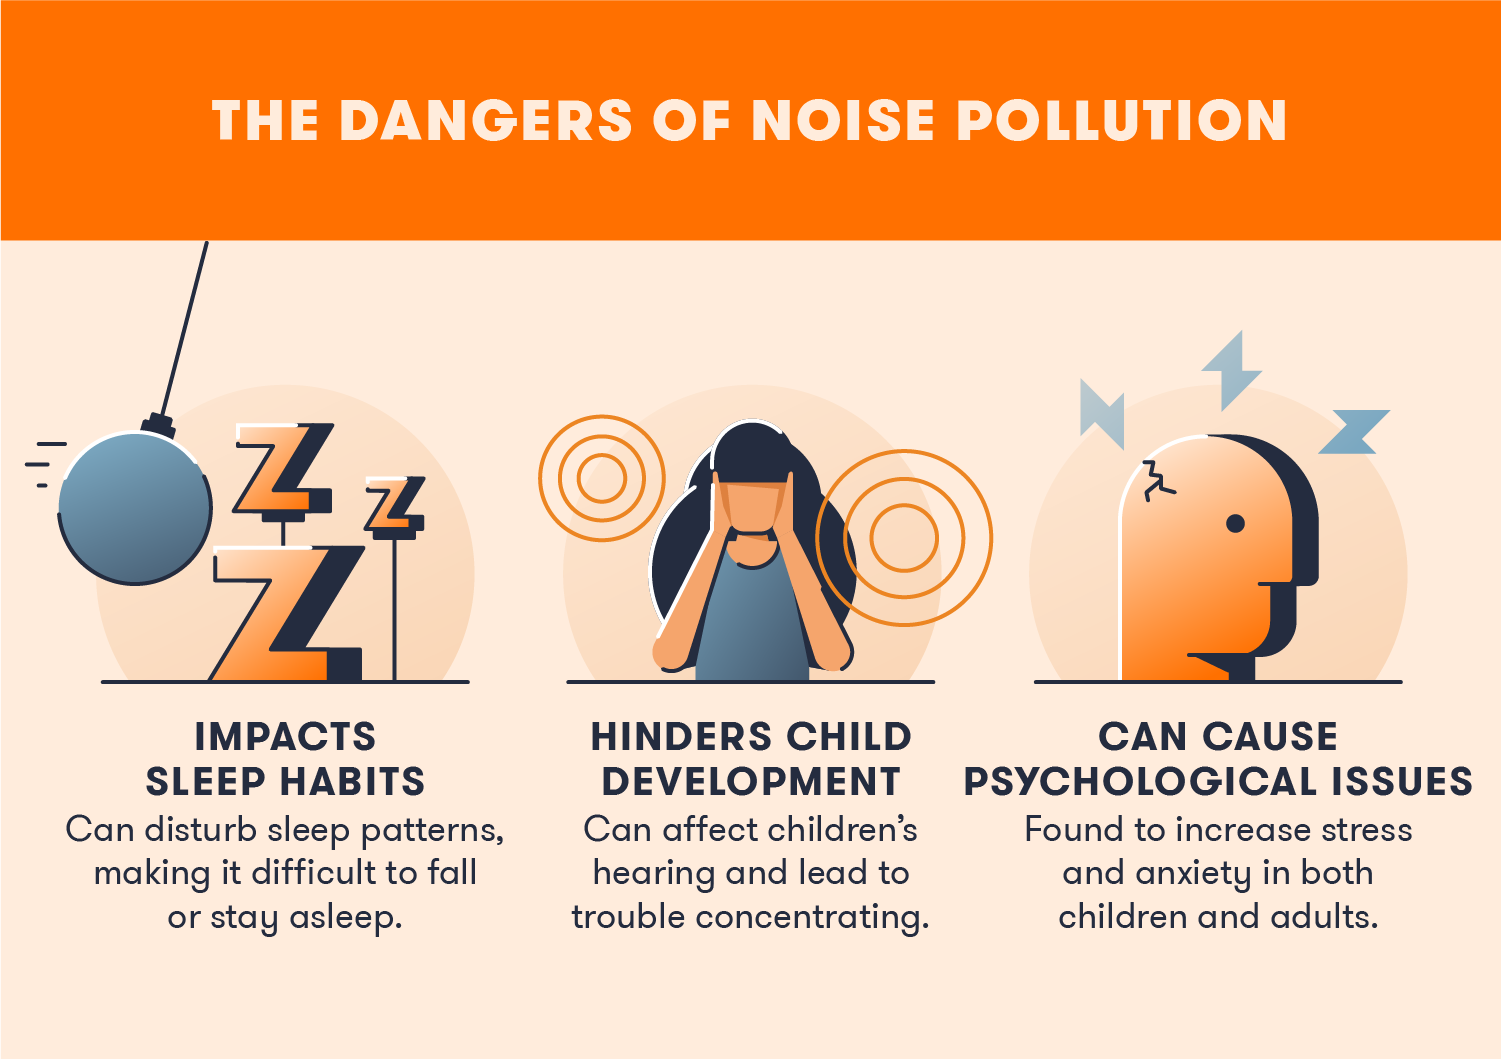 Noise pollution is dangerous to everyone and can lead to developmental or psychological problems.